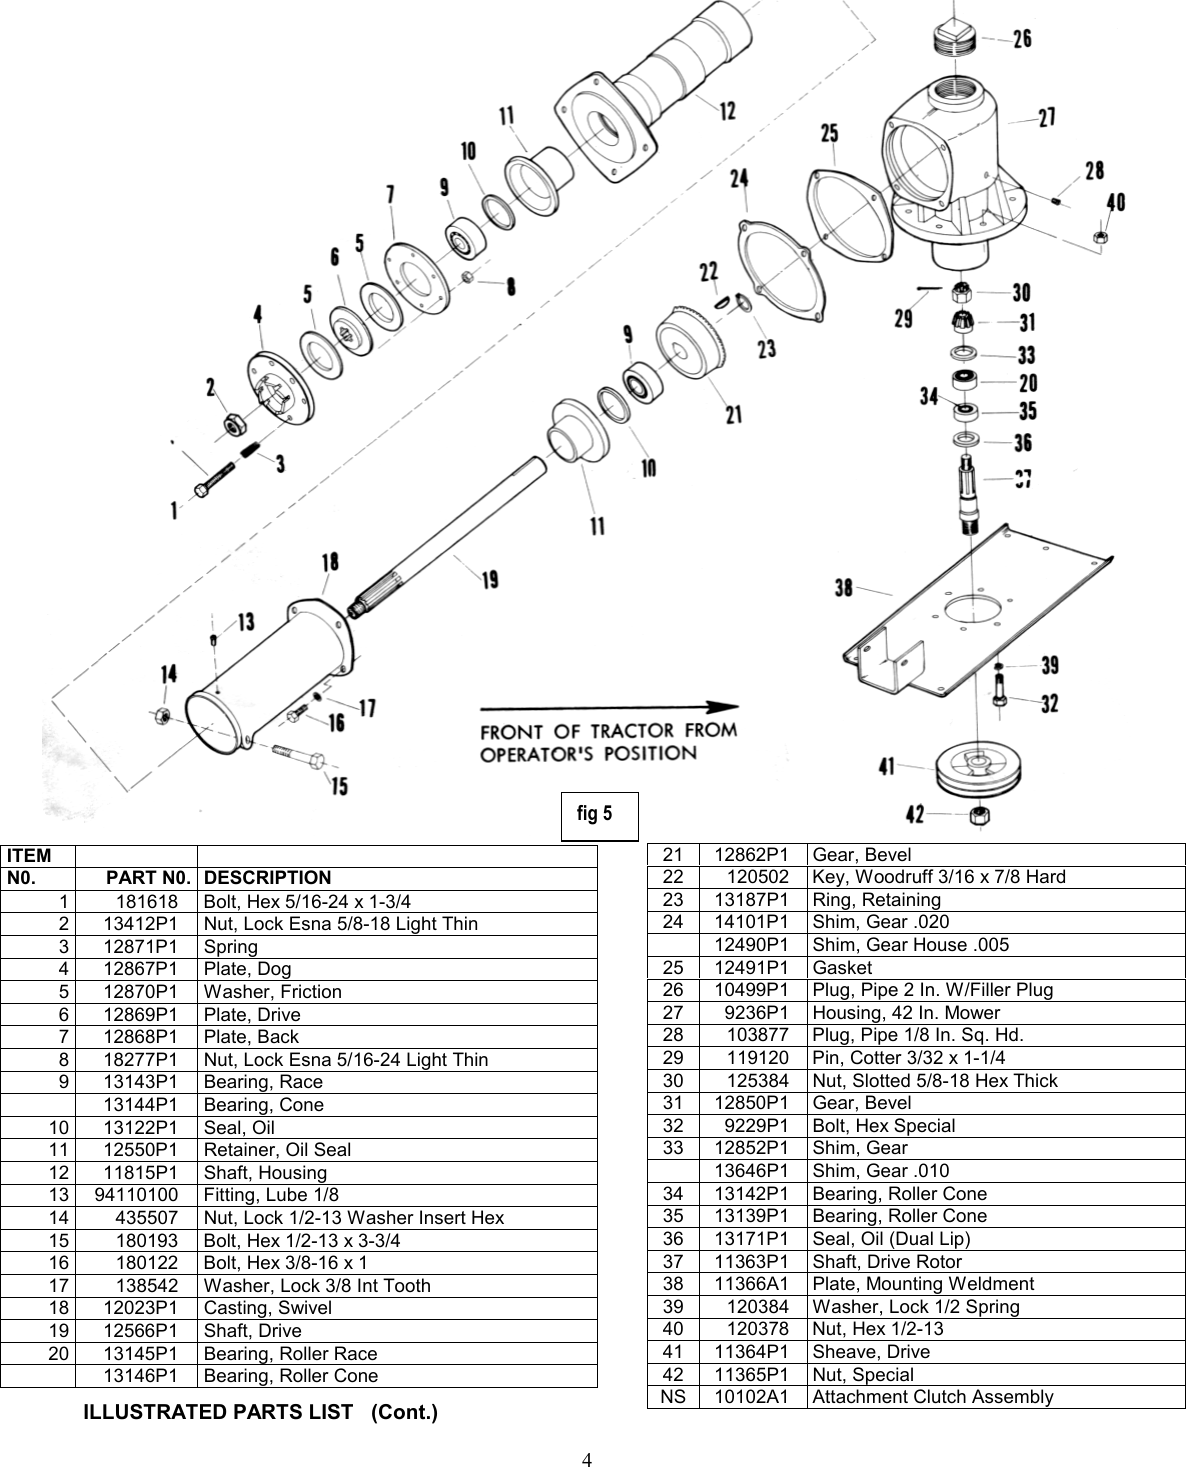 Gravely 11362 ITEM User Manual To The D9256d22 434e 4684